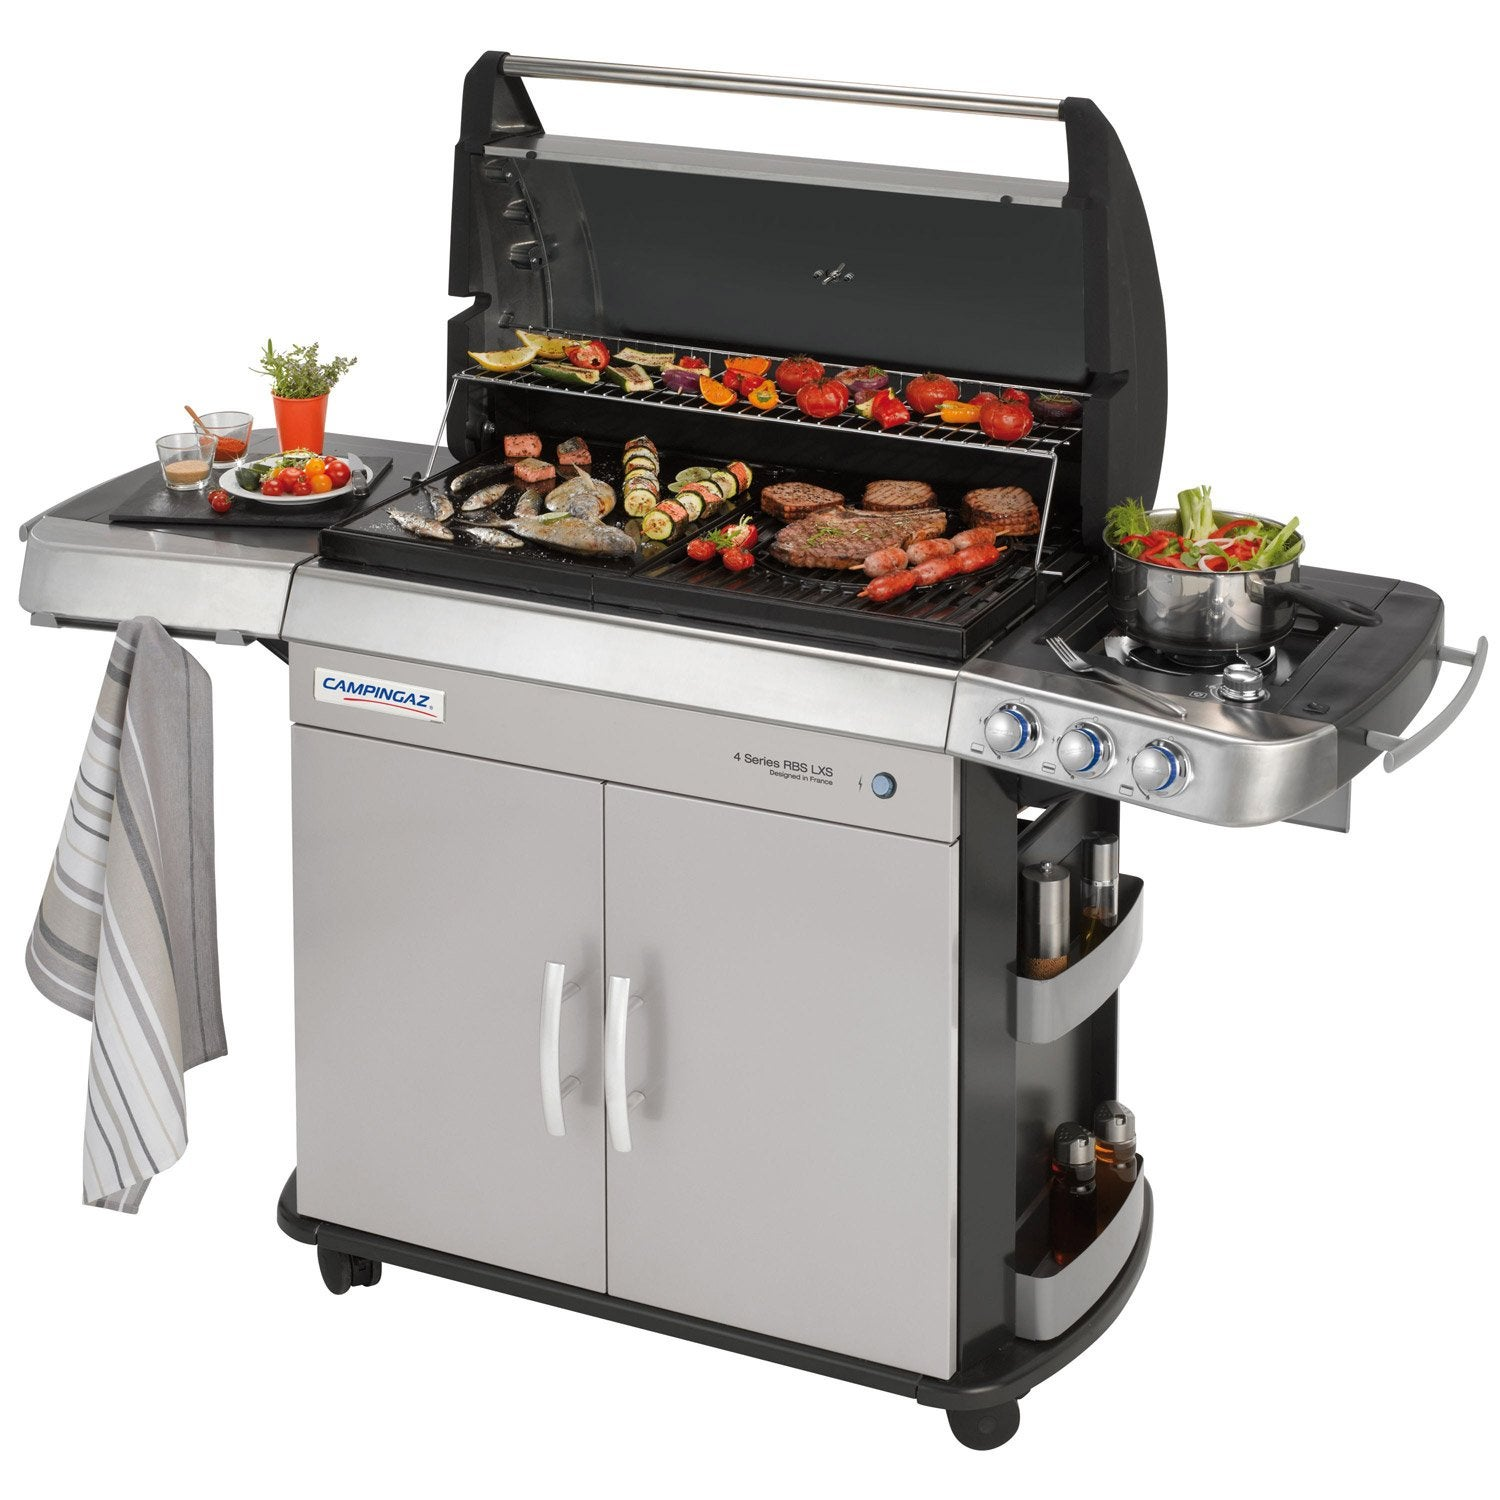 Barbecue au gaz campingaz 4 s ries rbs gris leroy merlin for Housse de barbecue campingaz